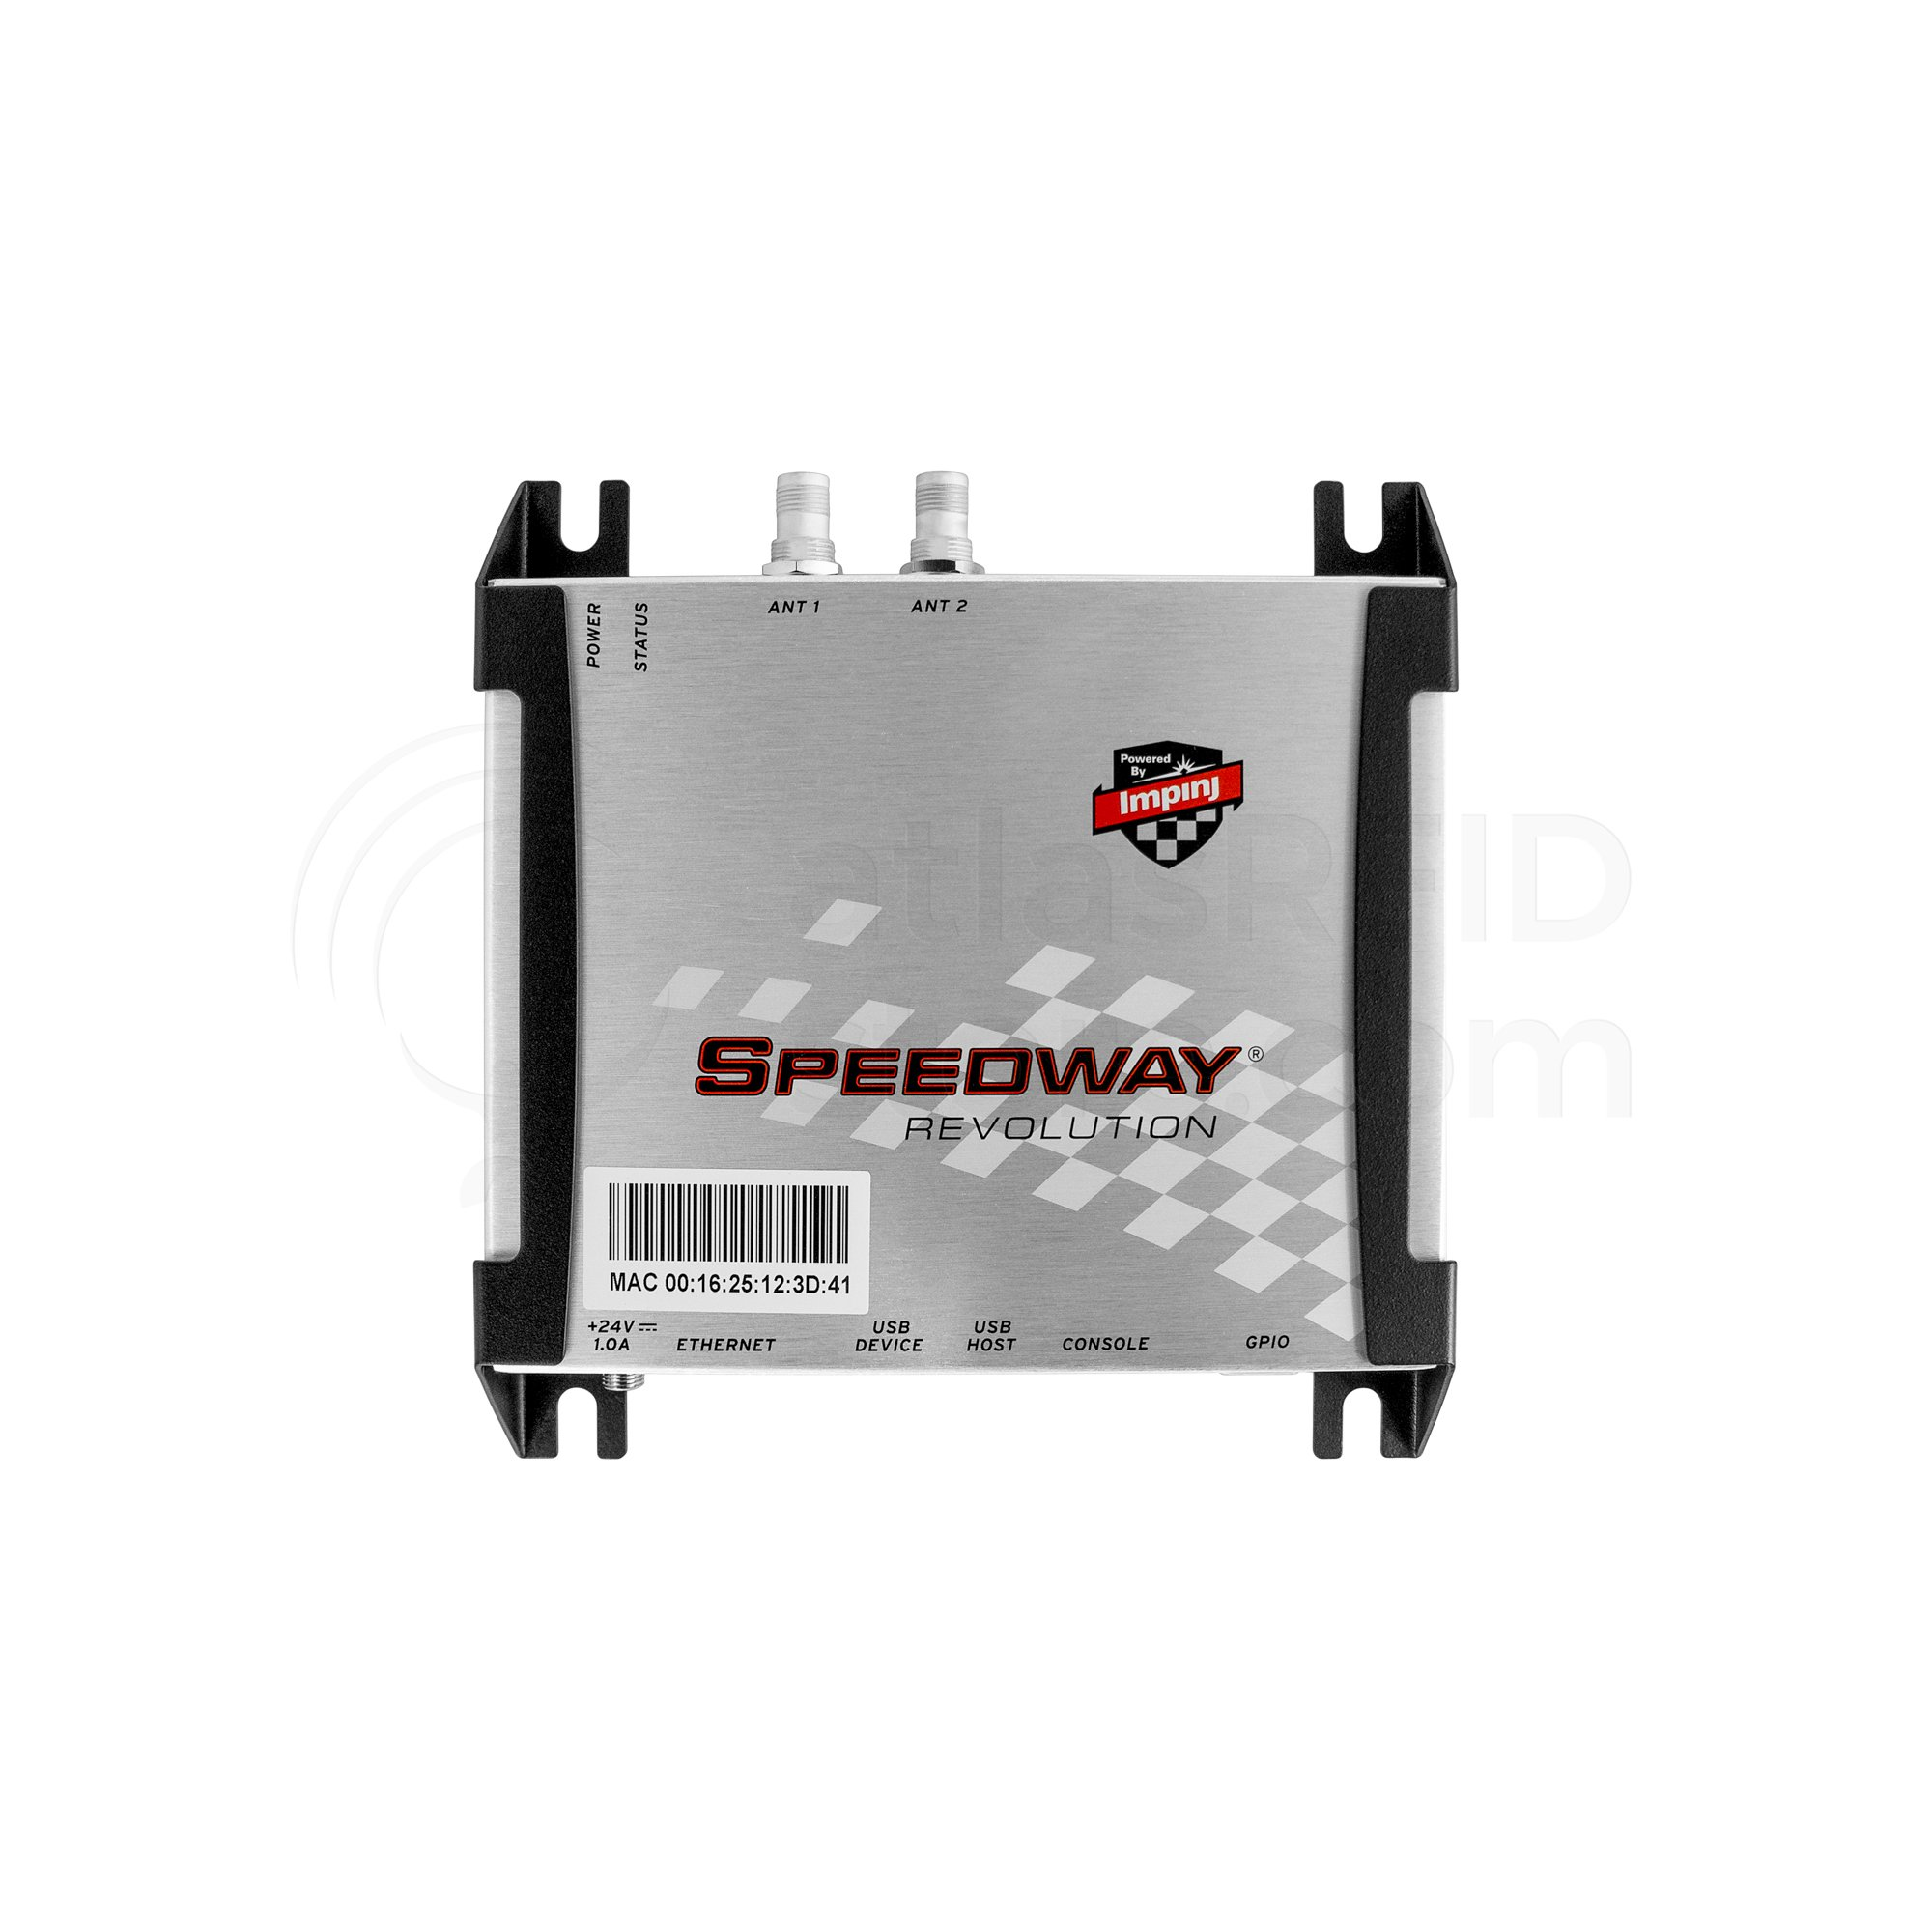 Impinj Speedway Revolution R220 UHF RFID Reader (2 Port) by Impinj